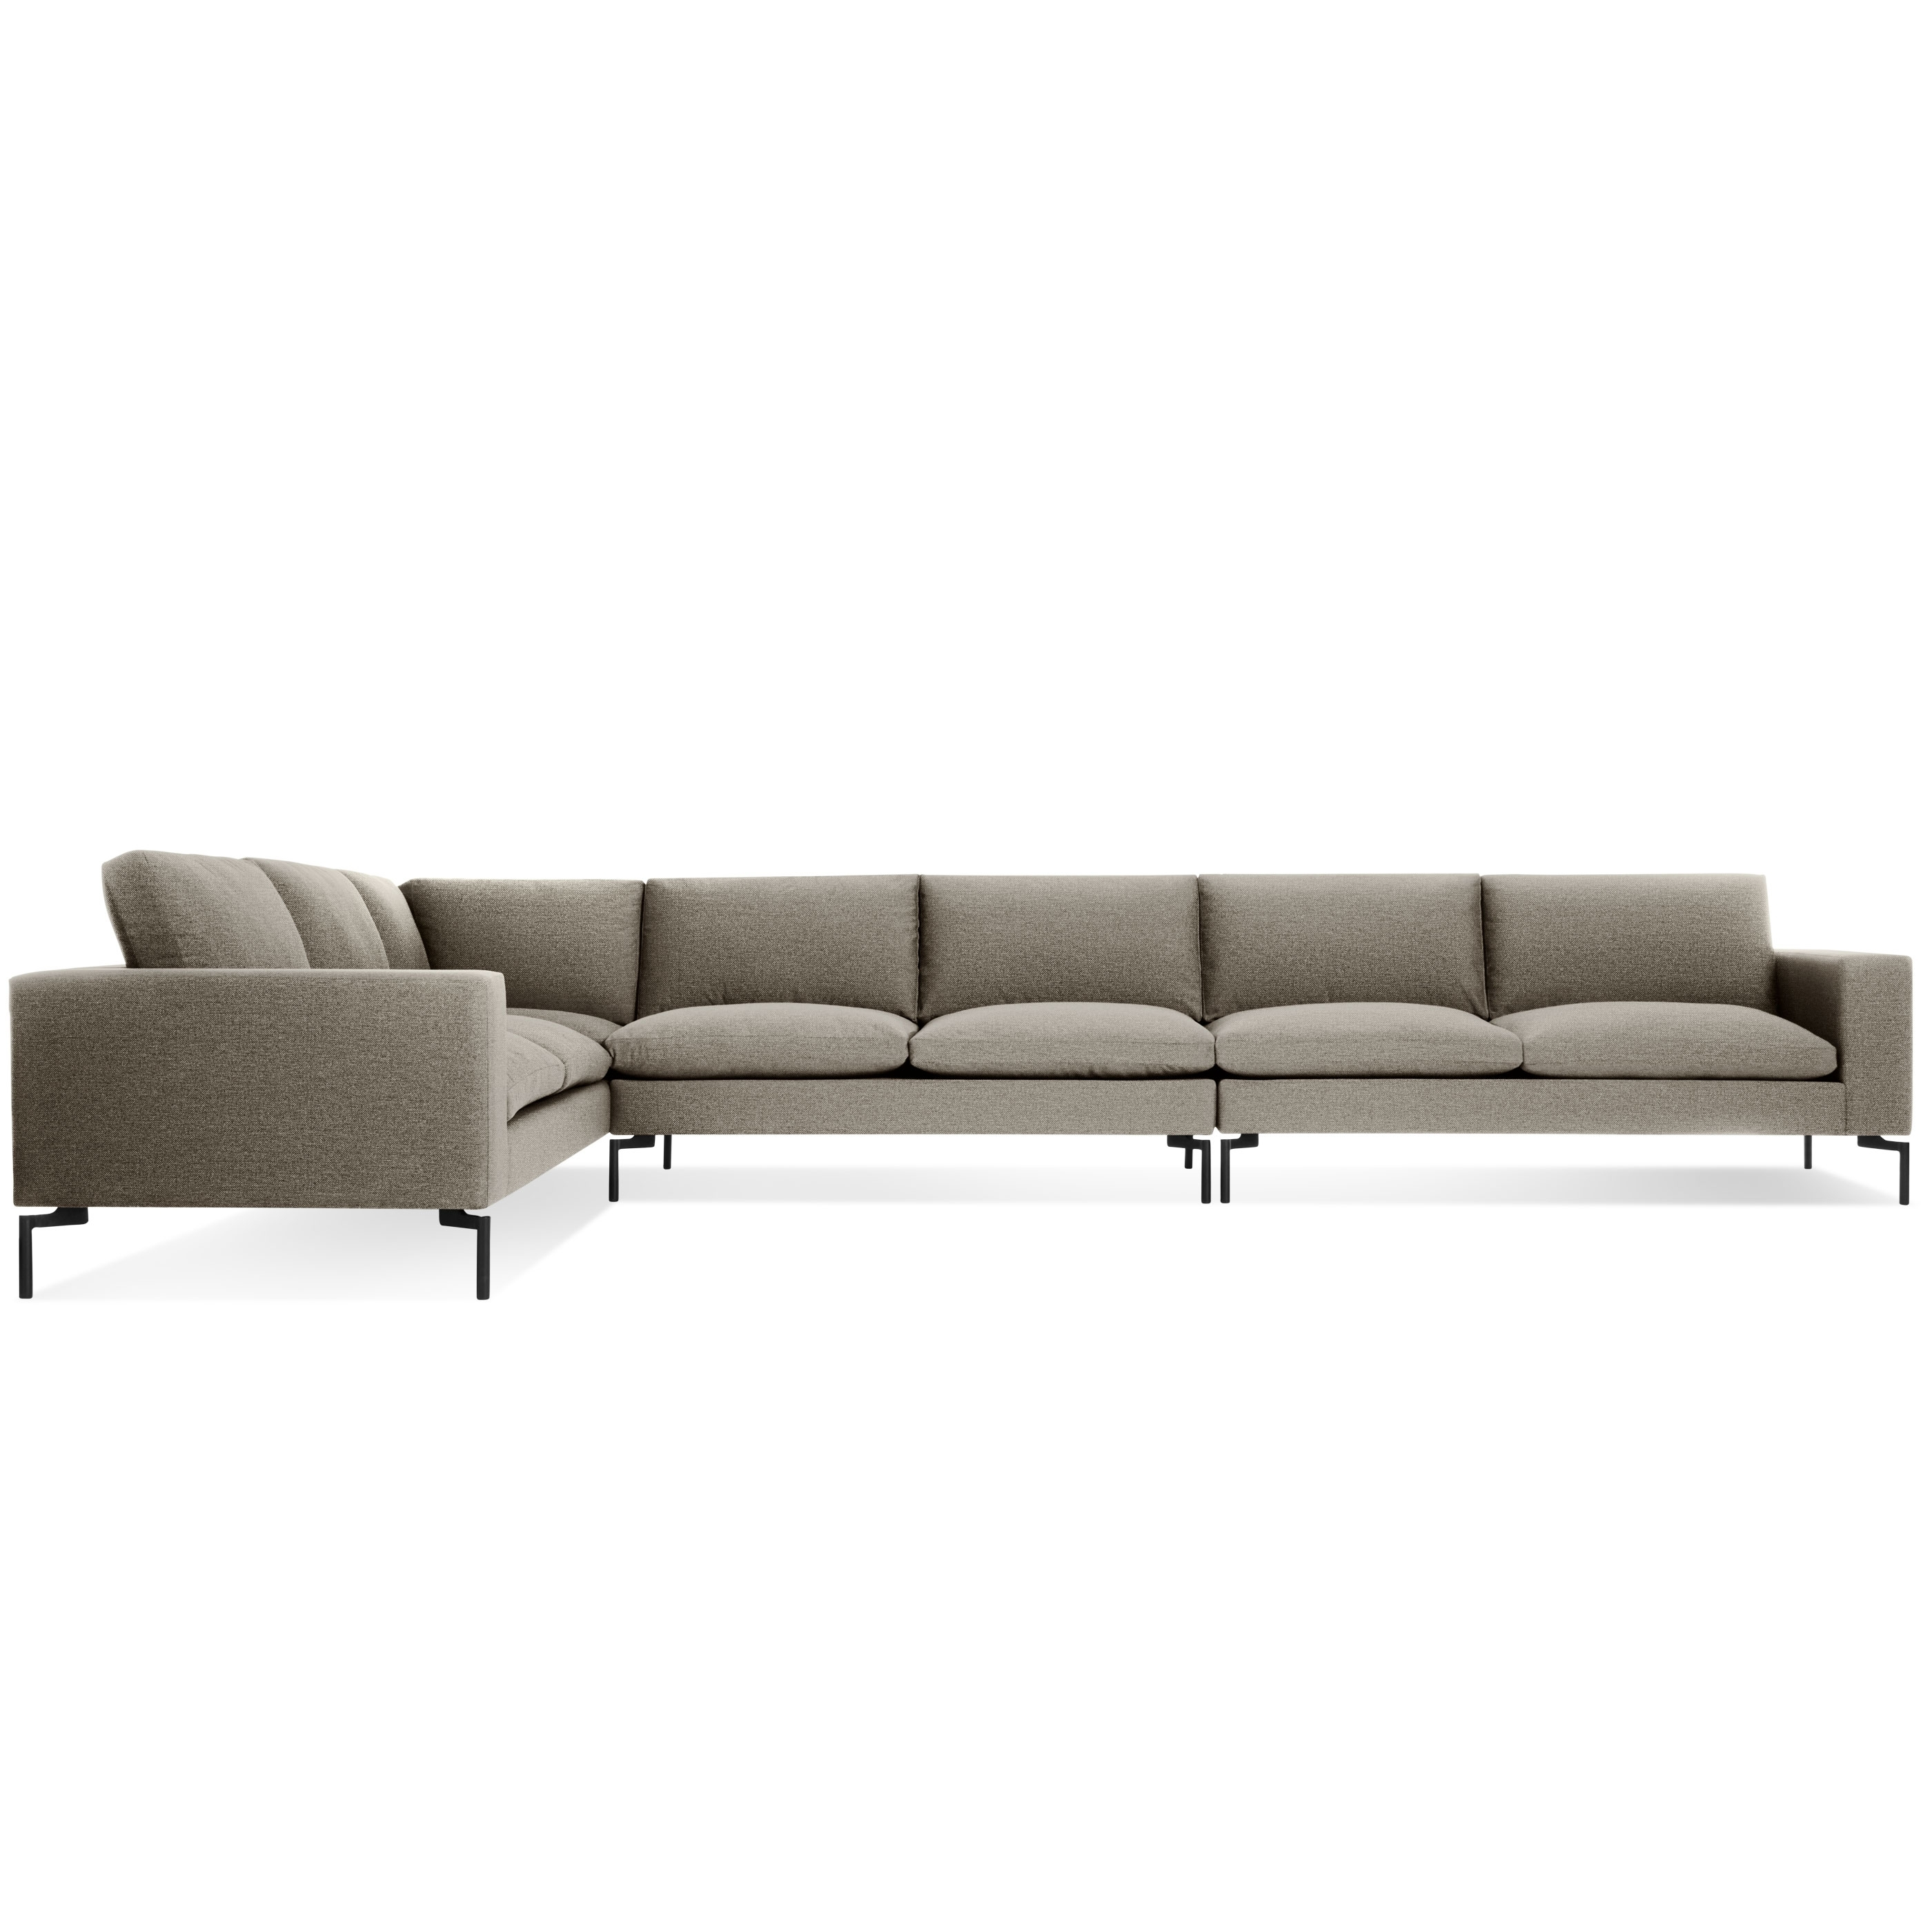 New Standard Large Sectional Sofa – Large Sofas | Blu Dot Inside Newfoundland Sectional Sofas (View 6 of 10)